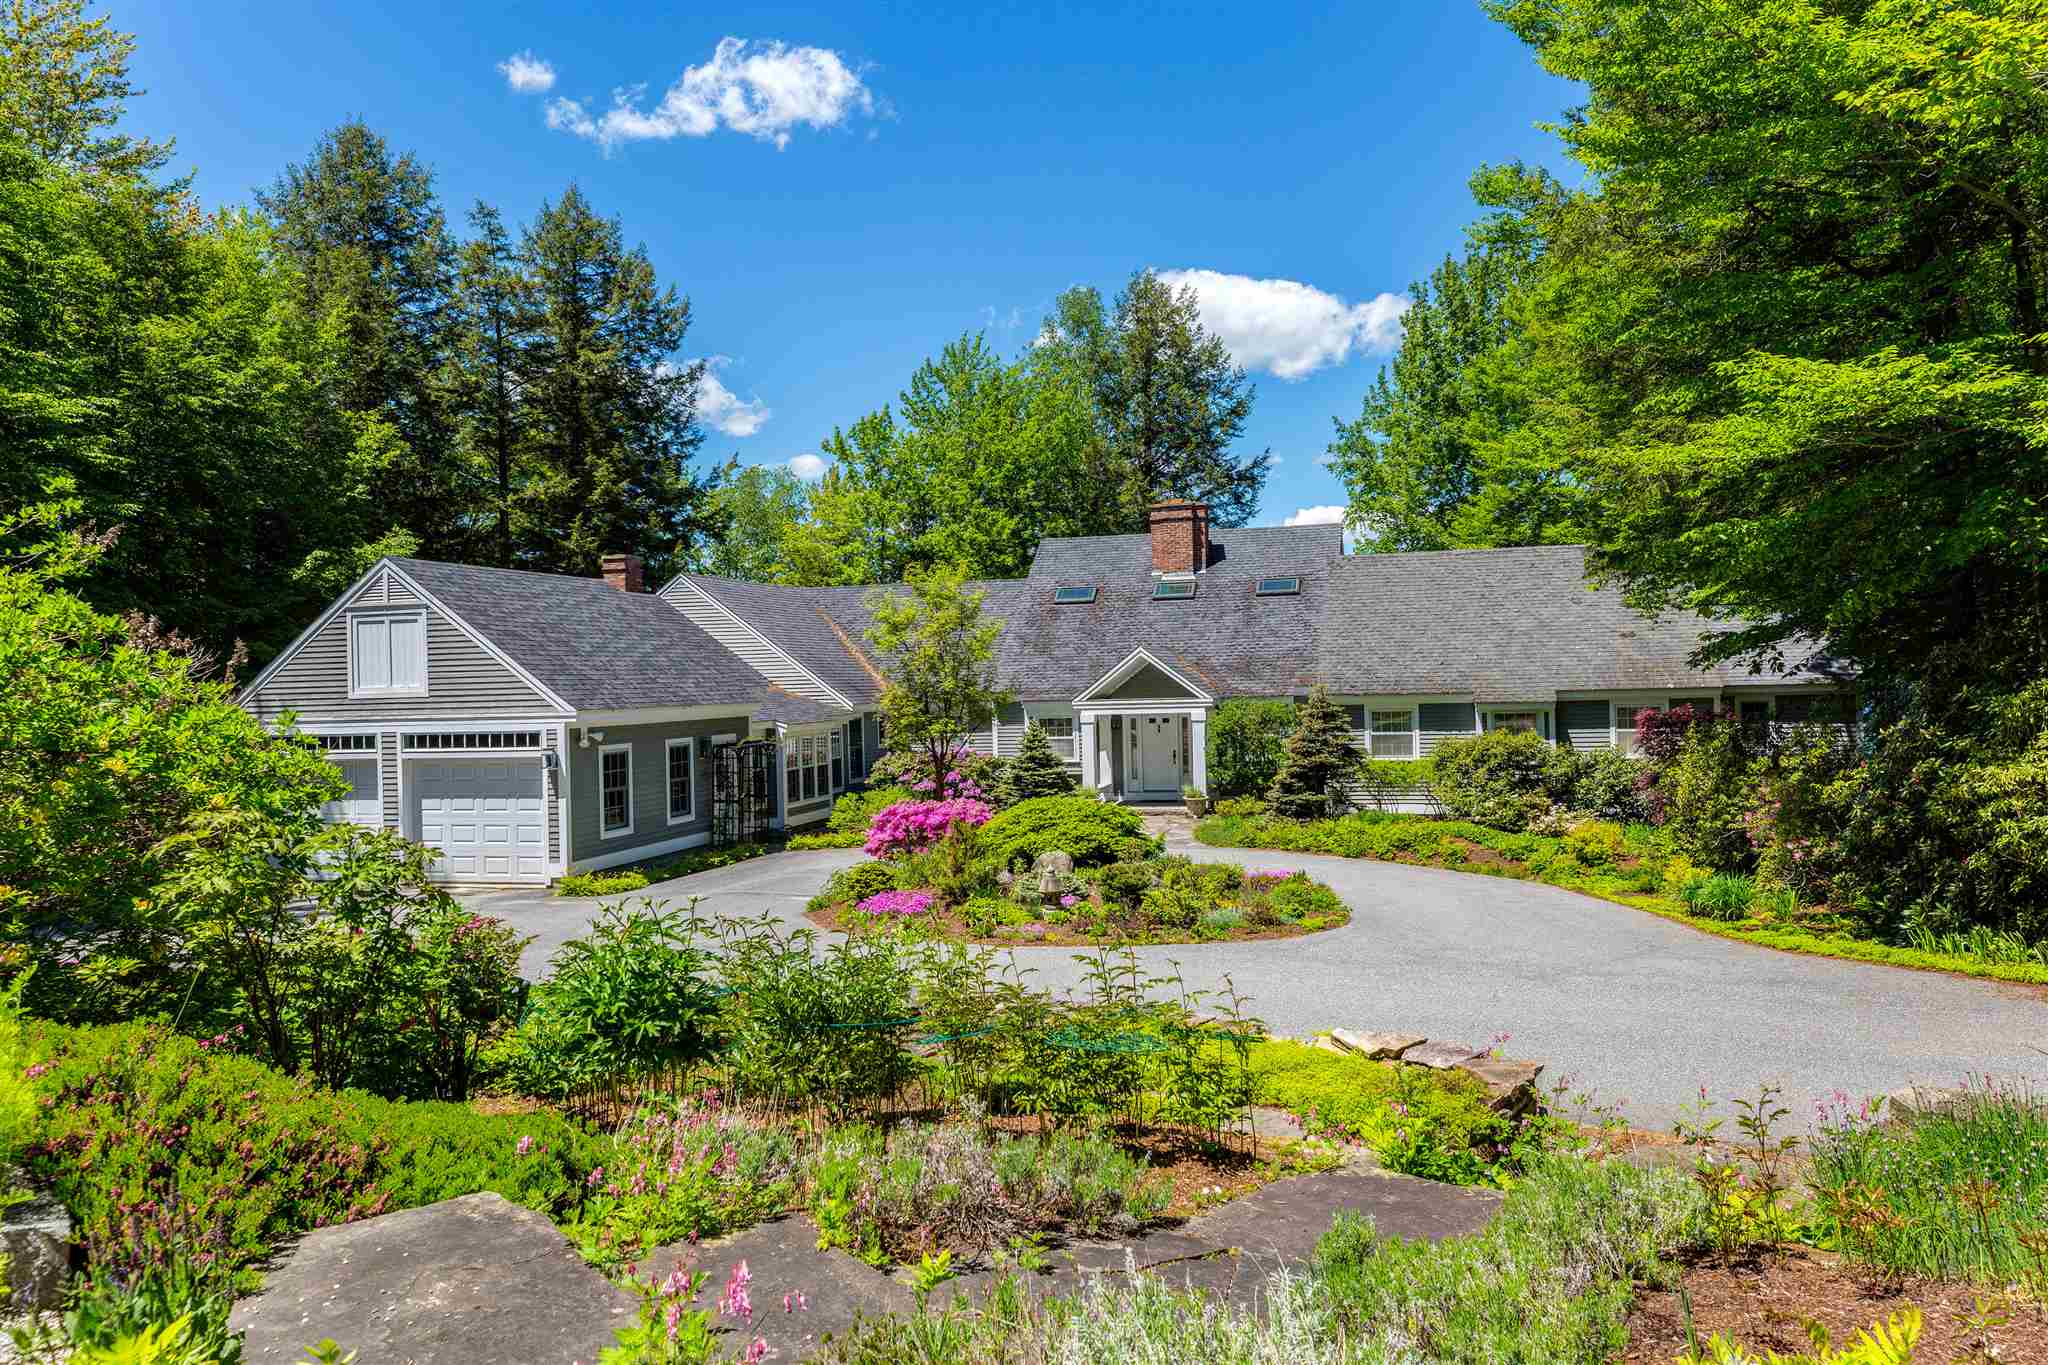 MLS 4808008: 147 South Cove Road, New London NH